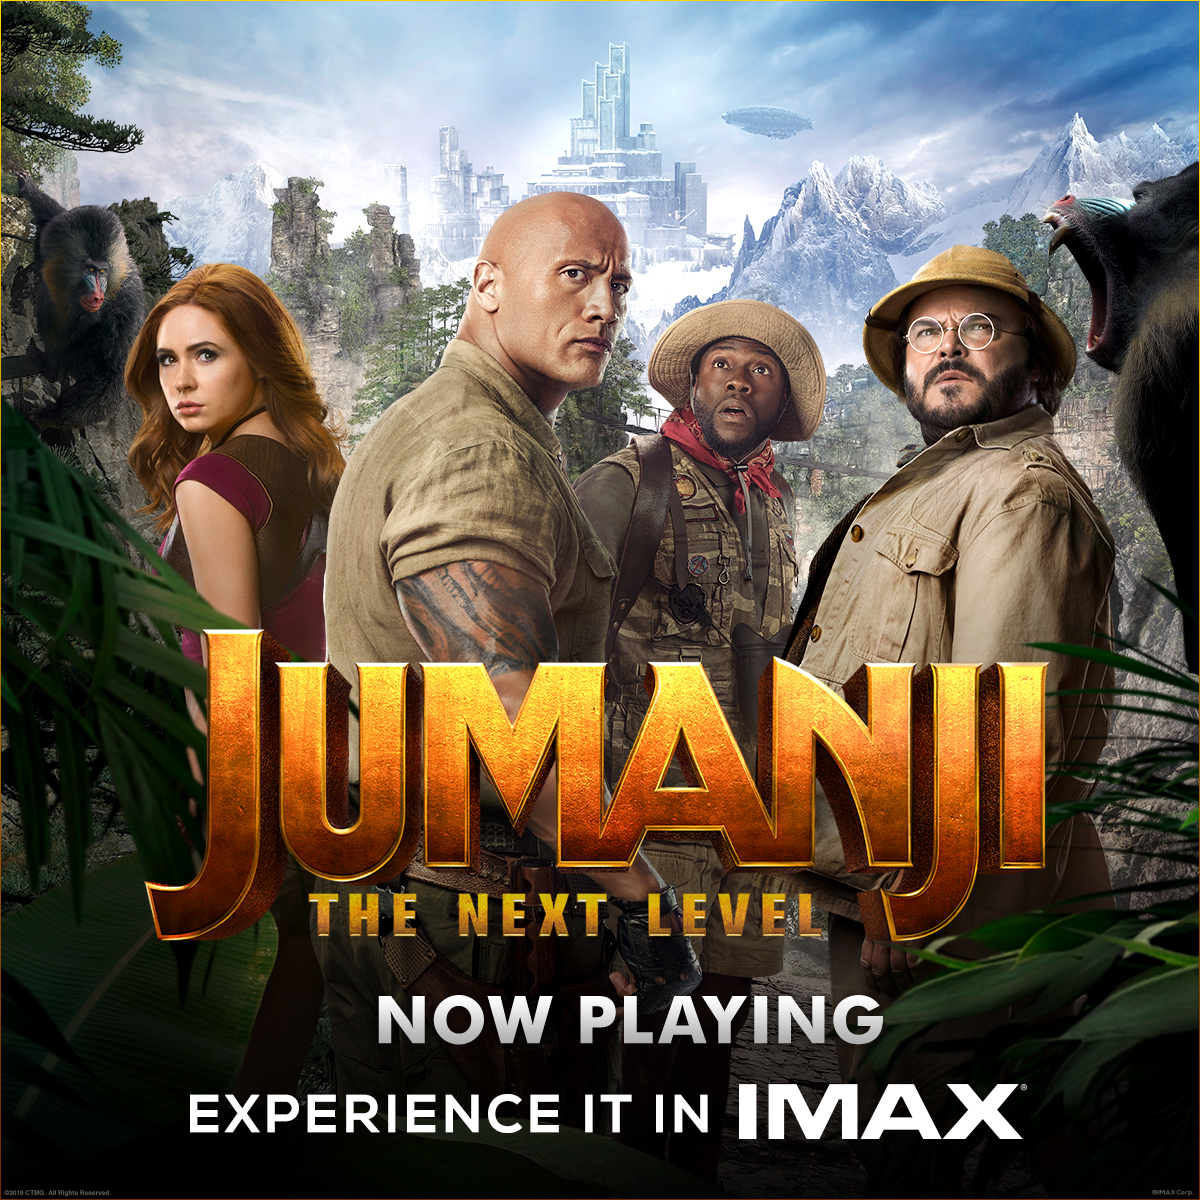 Unlock the next level of adventure when you experience Jumanji in immersive #IMAX theatres today!  Get your tickets now: https://t.co/wpmLL2zna3 https://t.co/Won3Fu5qAB